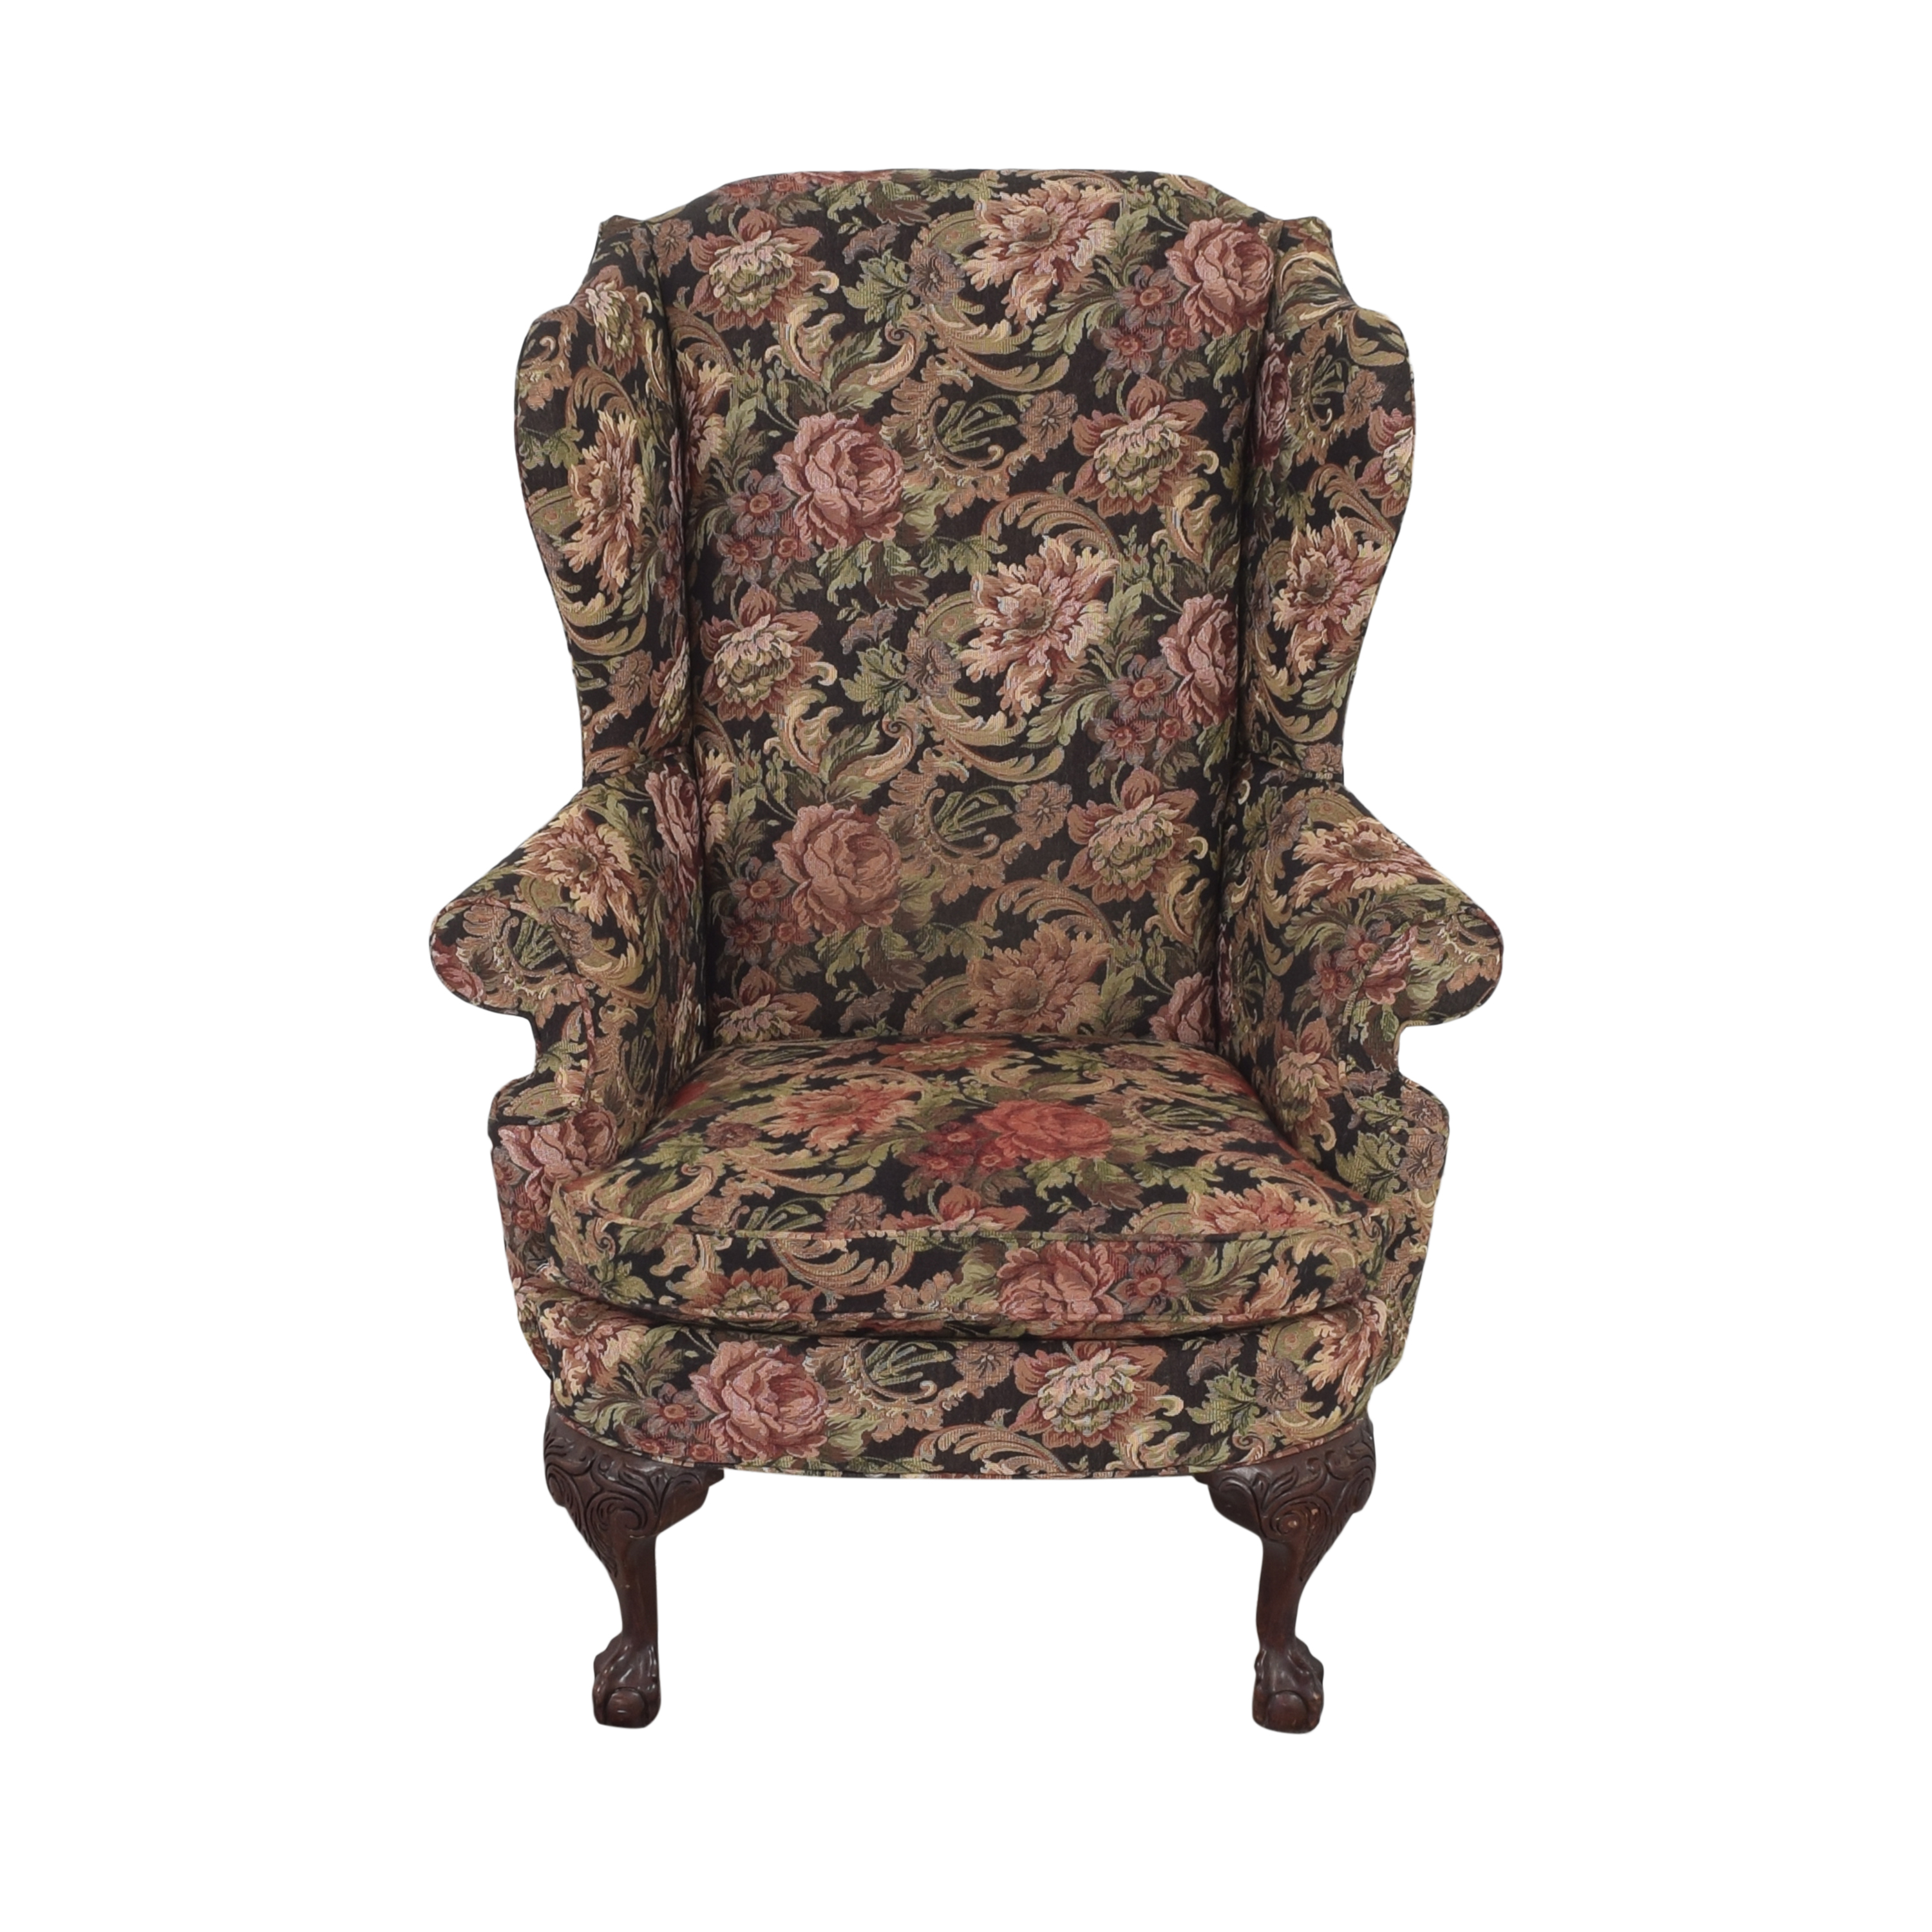 Thomasville Thomasville Queen Anne Wing Back Chair multi